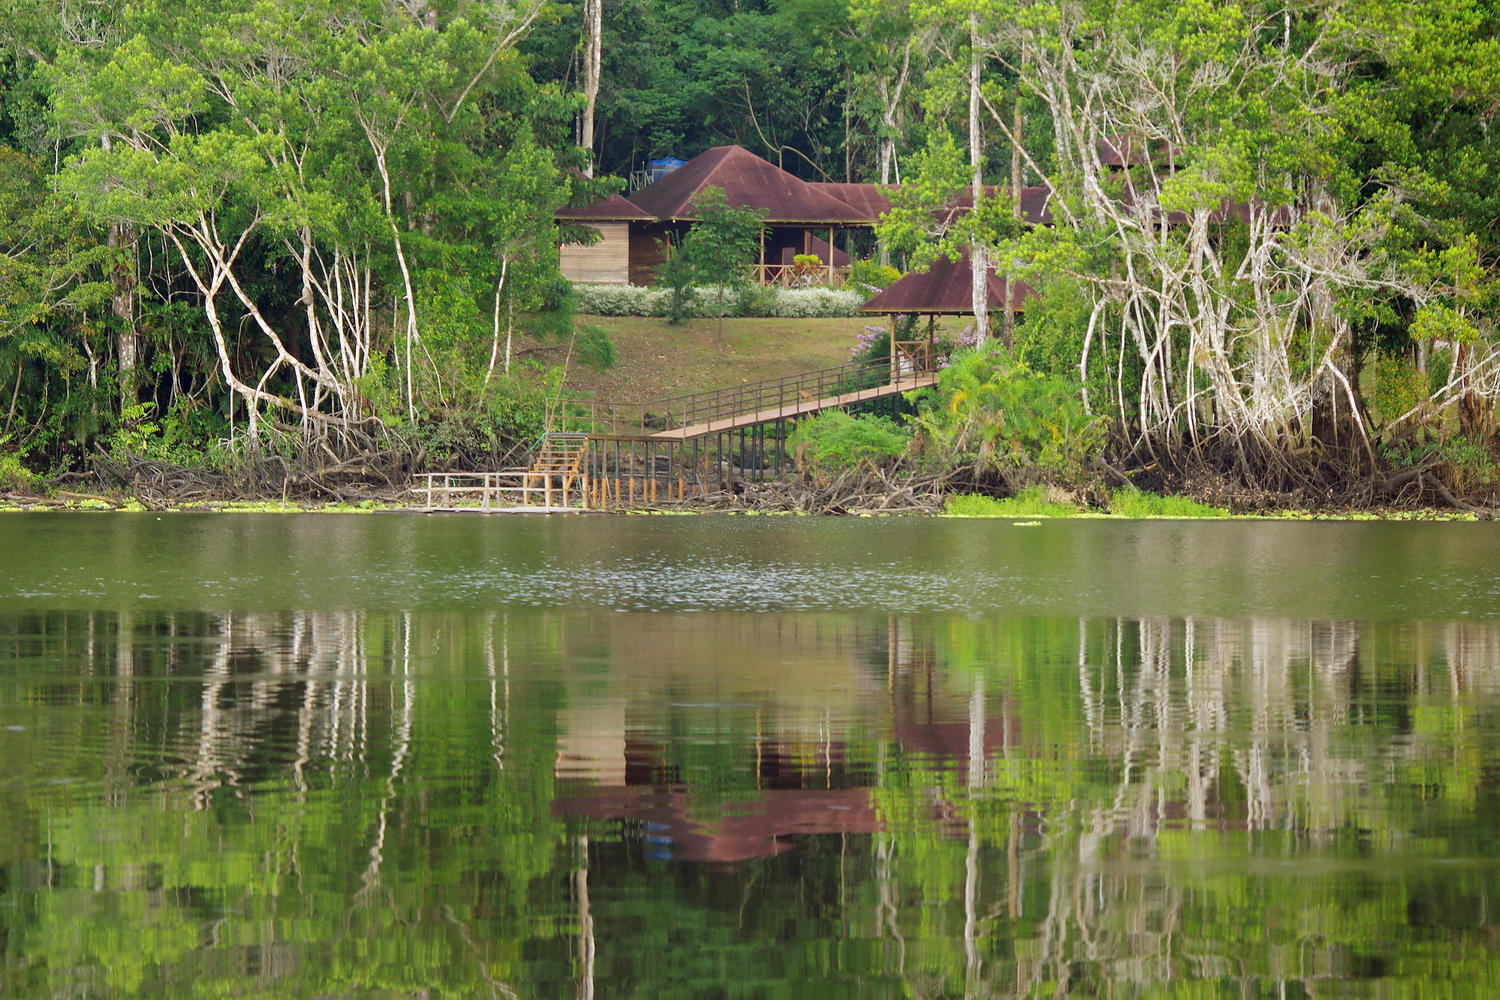 View of cabins from lake at Eden Lodge in Ecuadorian Amazon